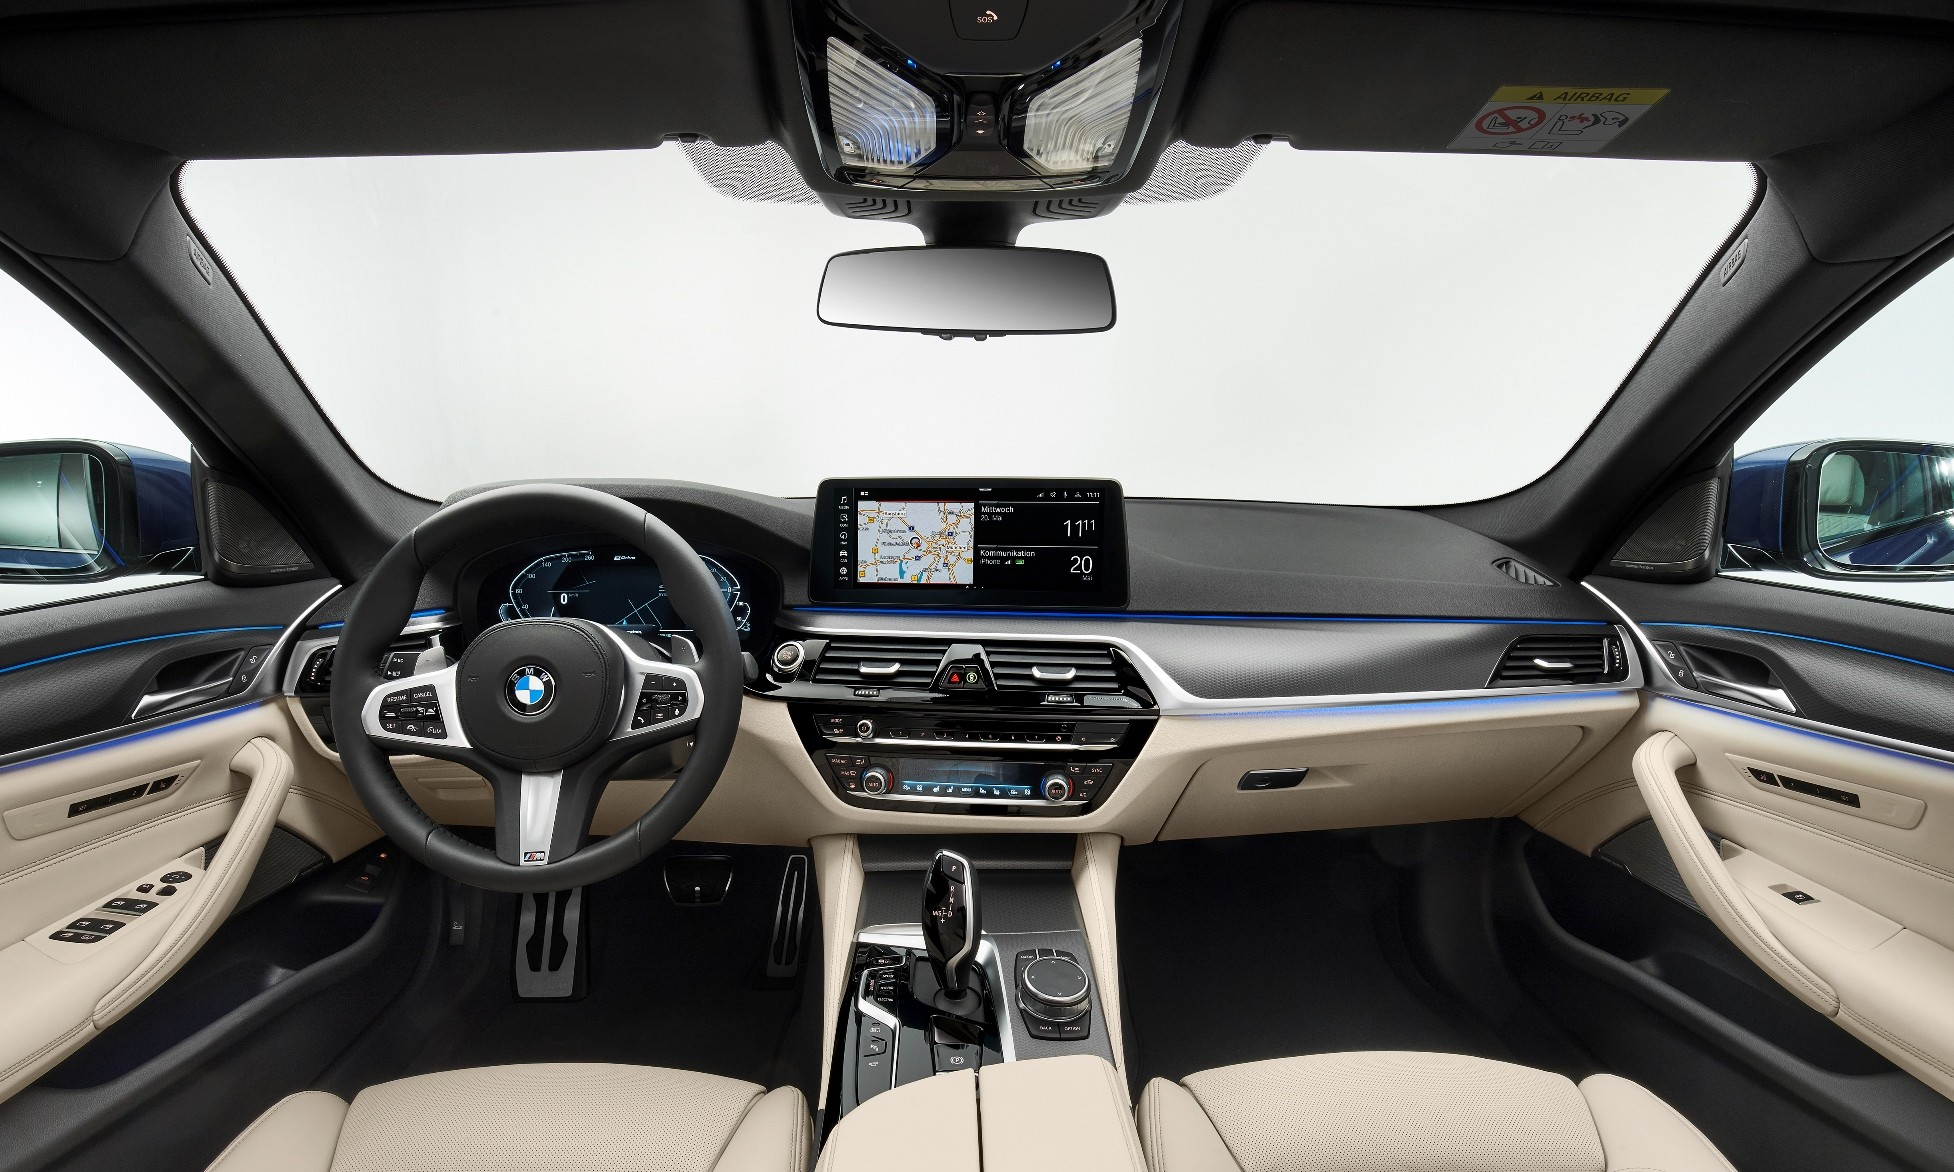 Facelifted BMW 5 Series interior